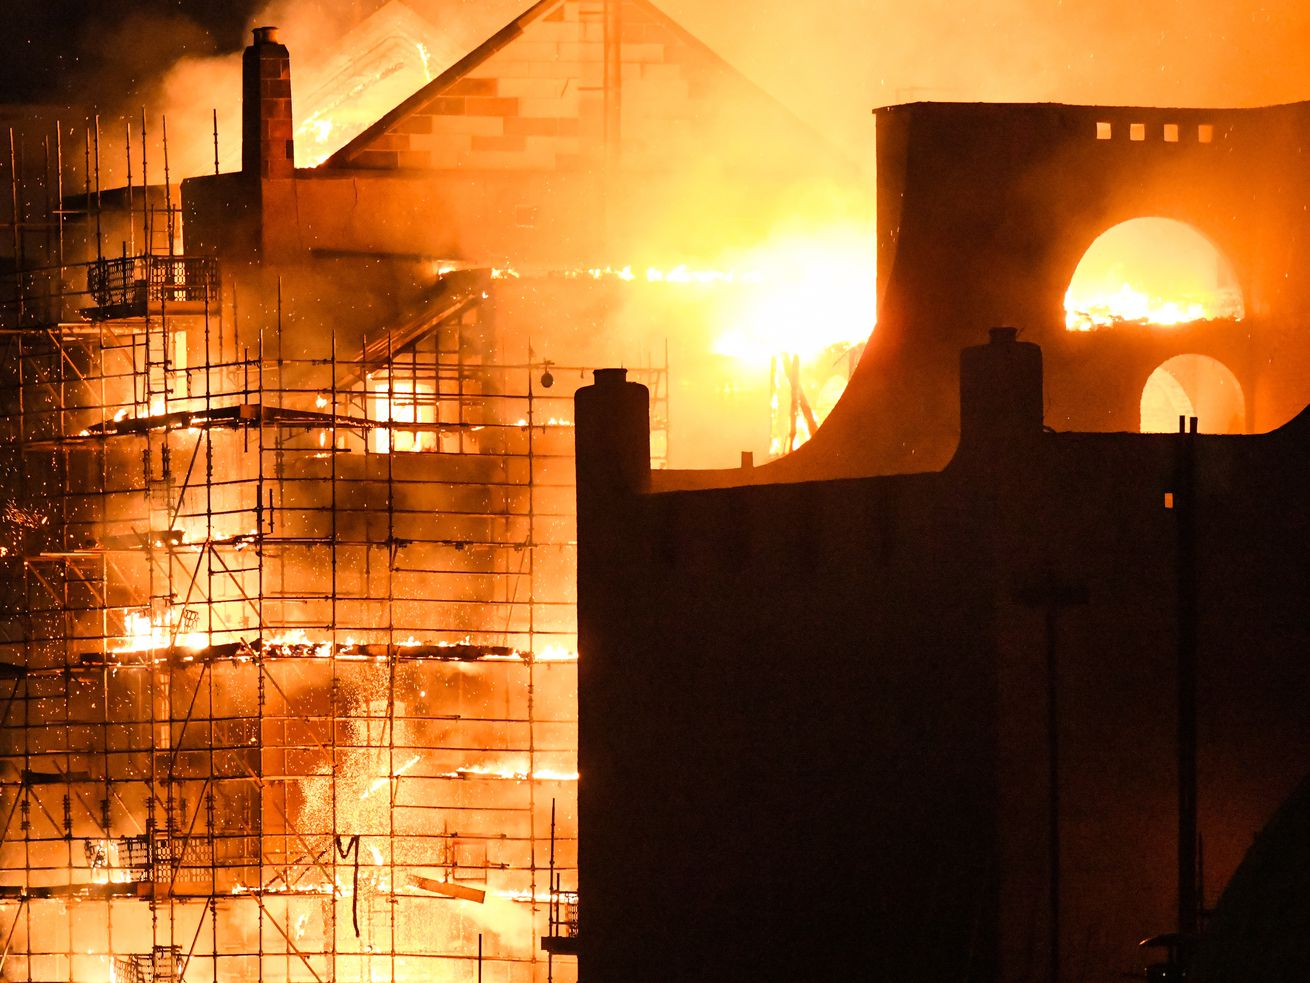 Iconic Glasgow School of Art to be dismantled after fire